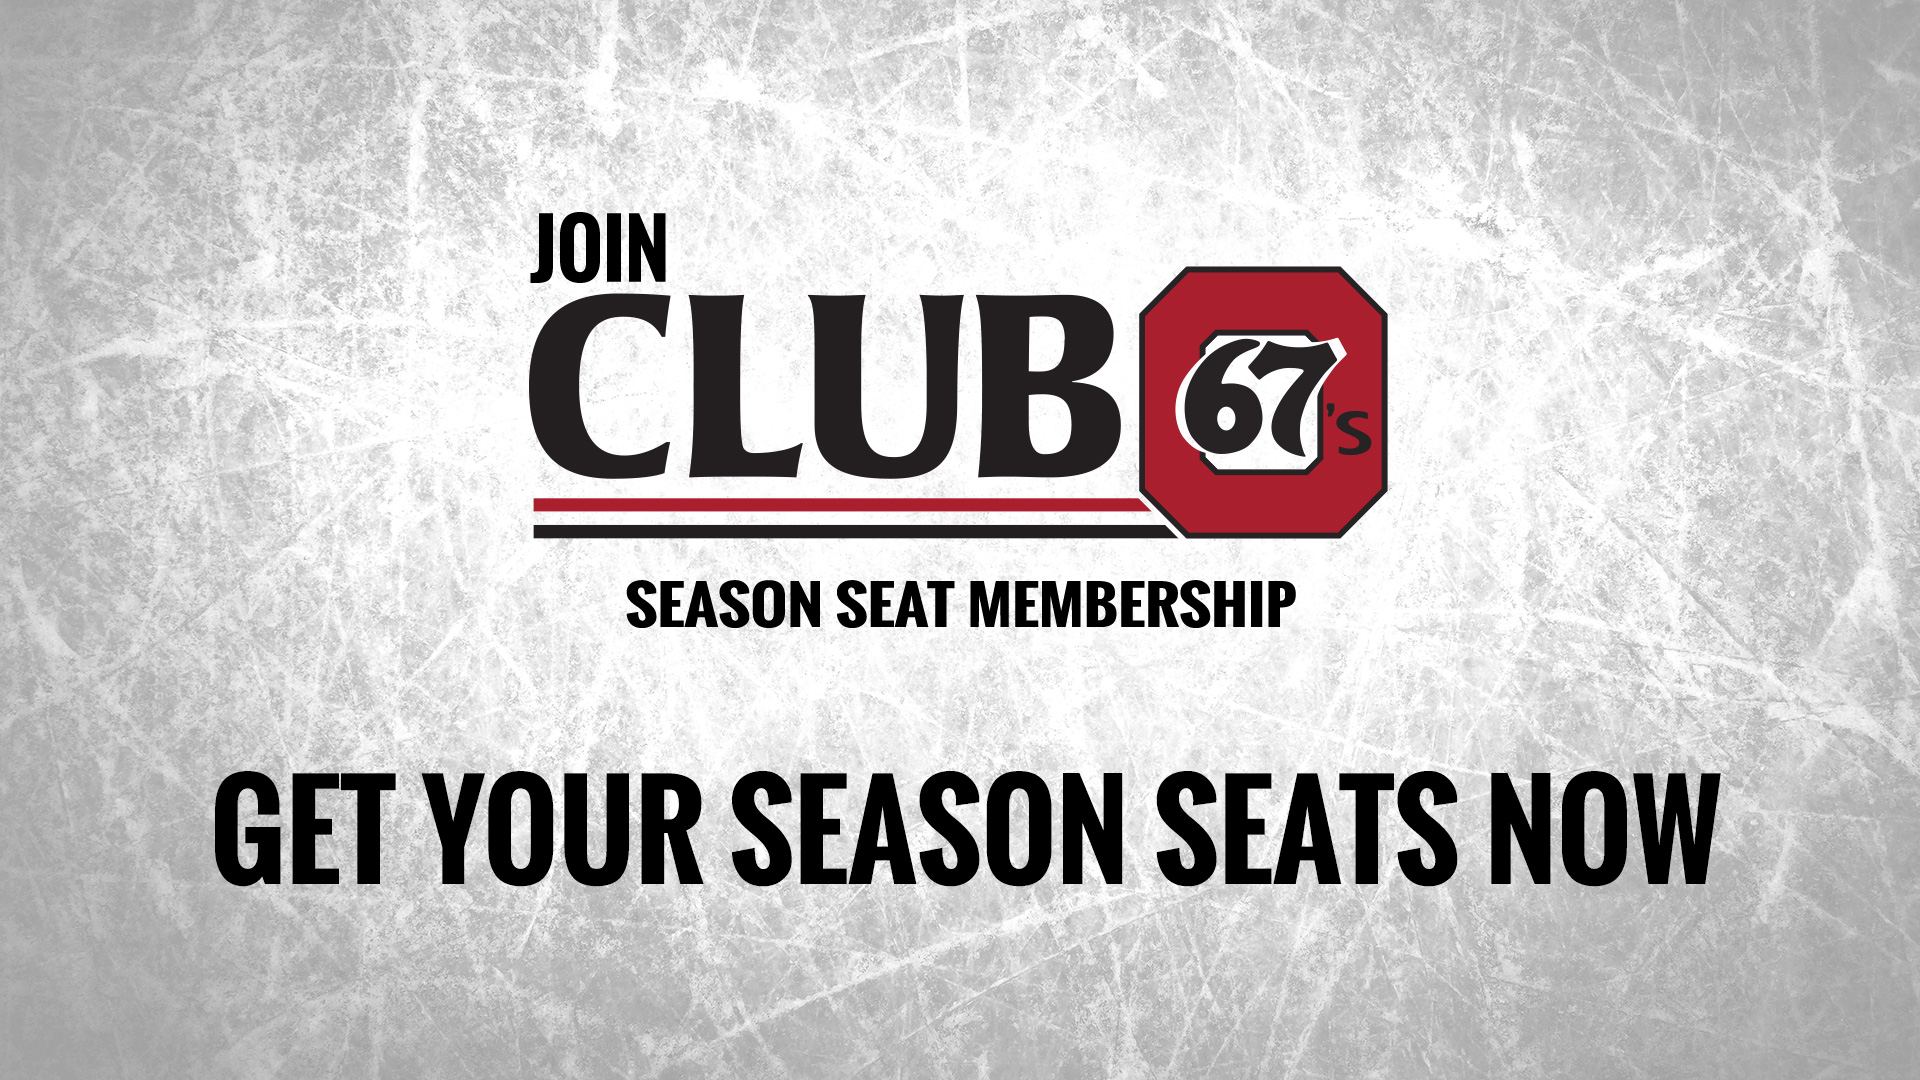 Get your Season Seats Now for 2019-20